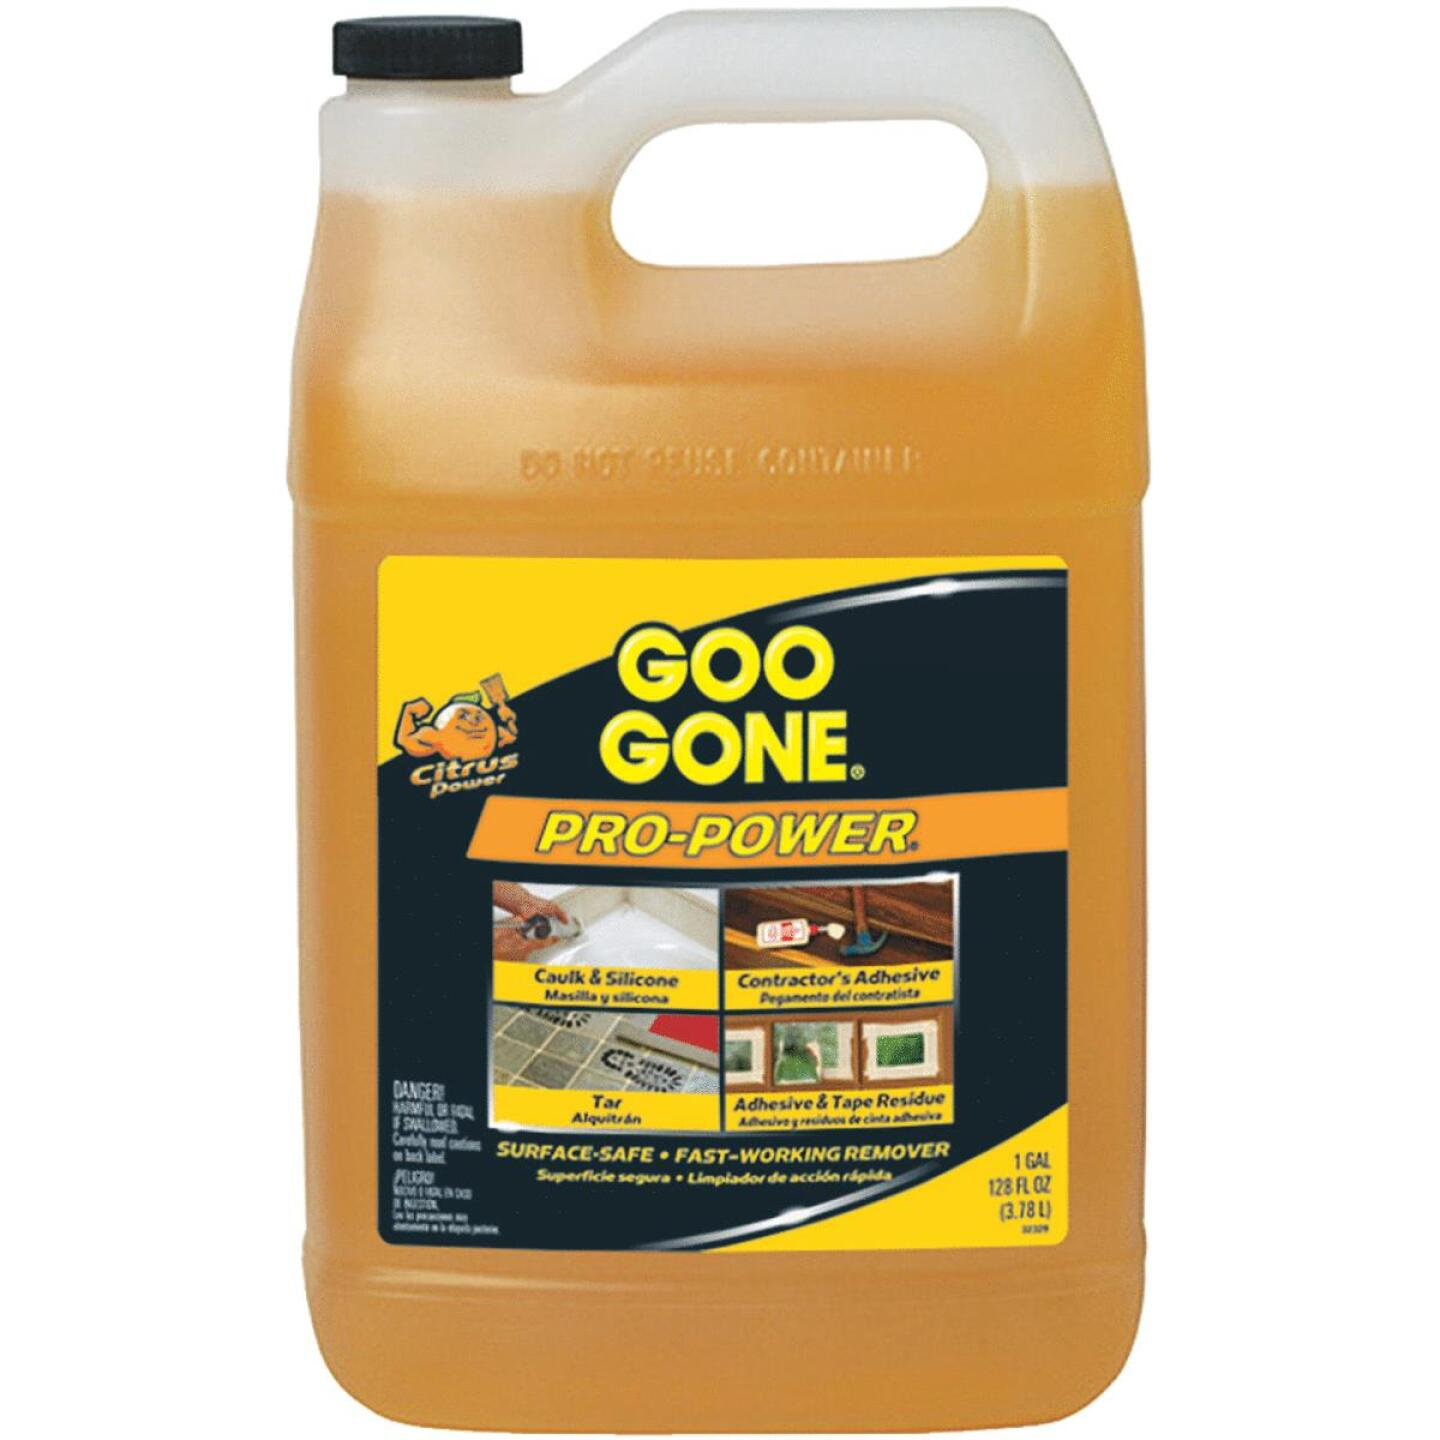 Goo Gone 1 Gal. Pro-Power Adhesive Remover Image 285